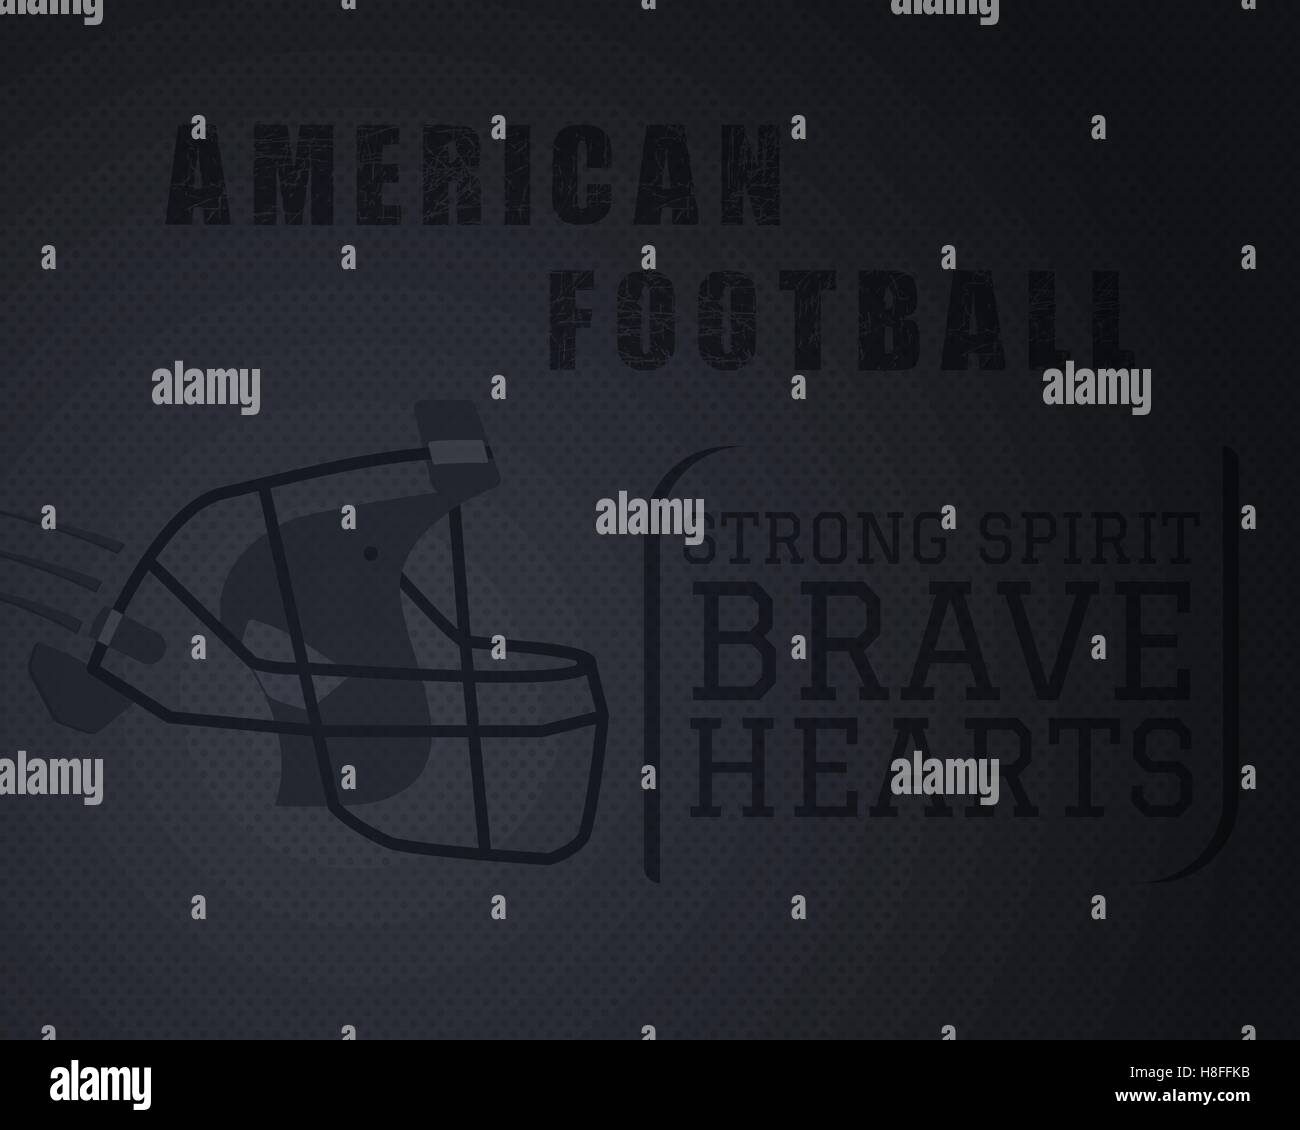 Modern Unique American Football Poster With Motivation Quote   Strong  Spirit Brave Hearts   On Dotted Halftone Like Ball Stylish Background With  Helmet ...